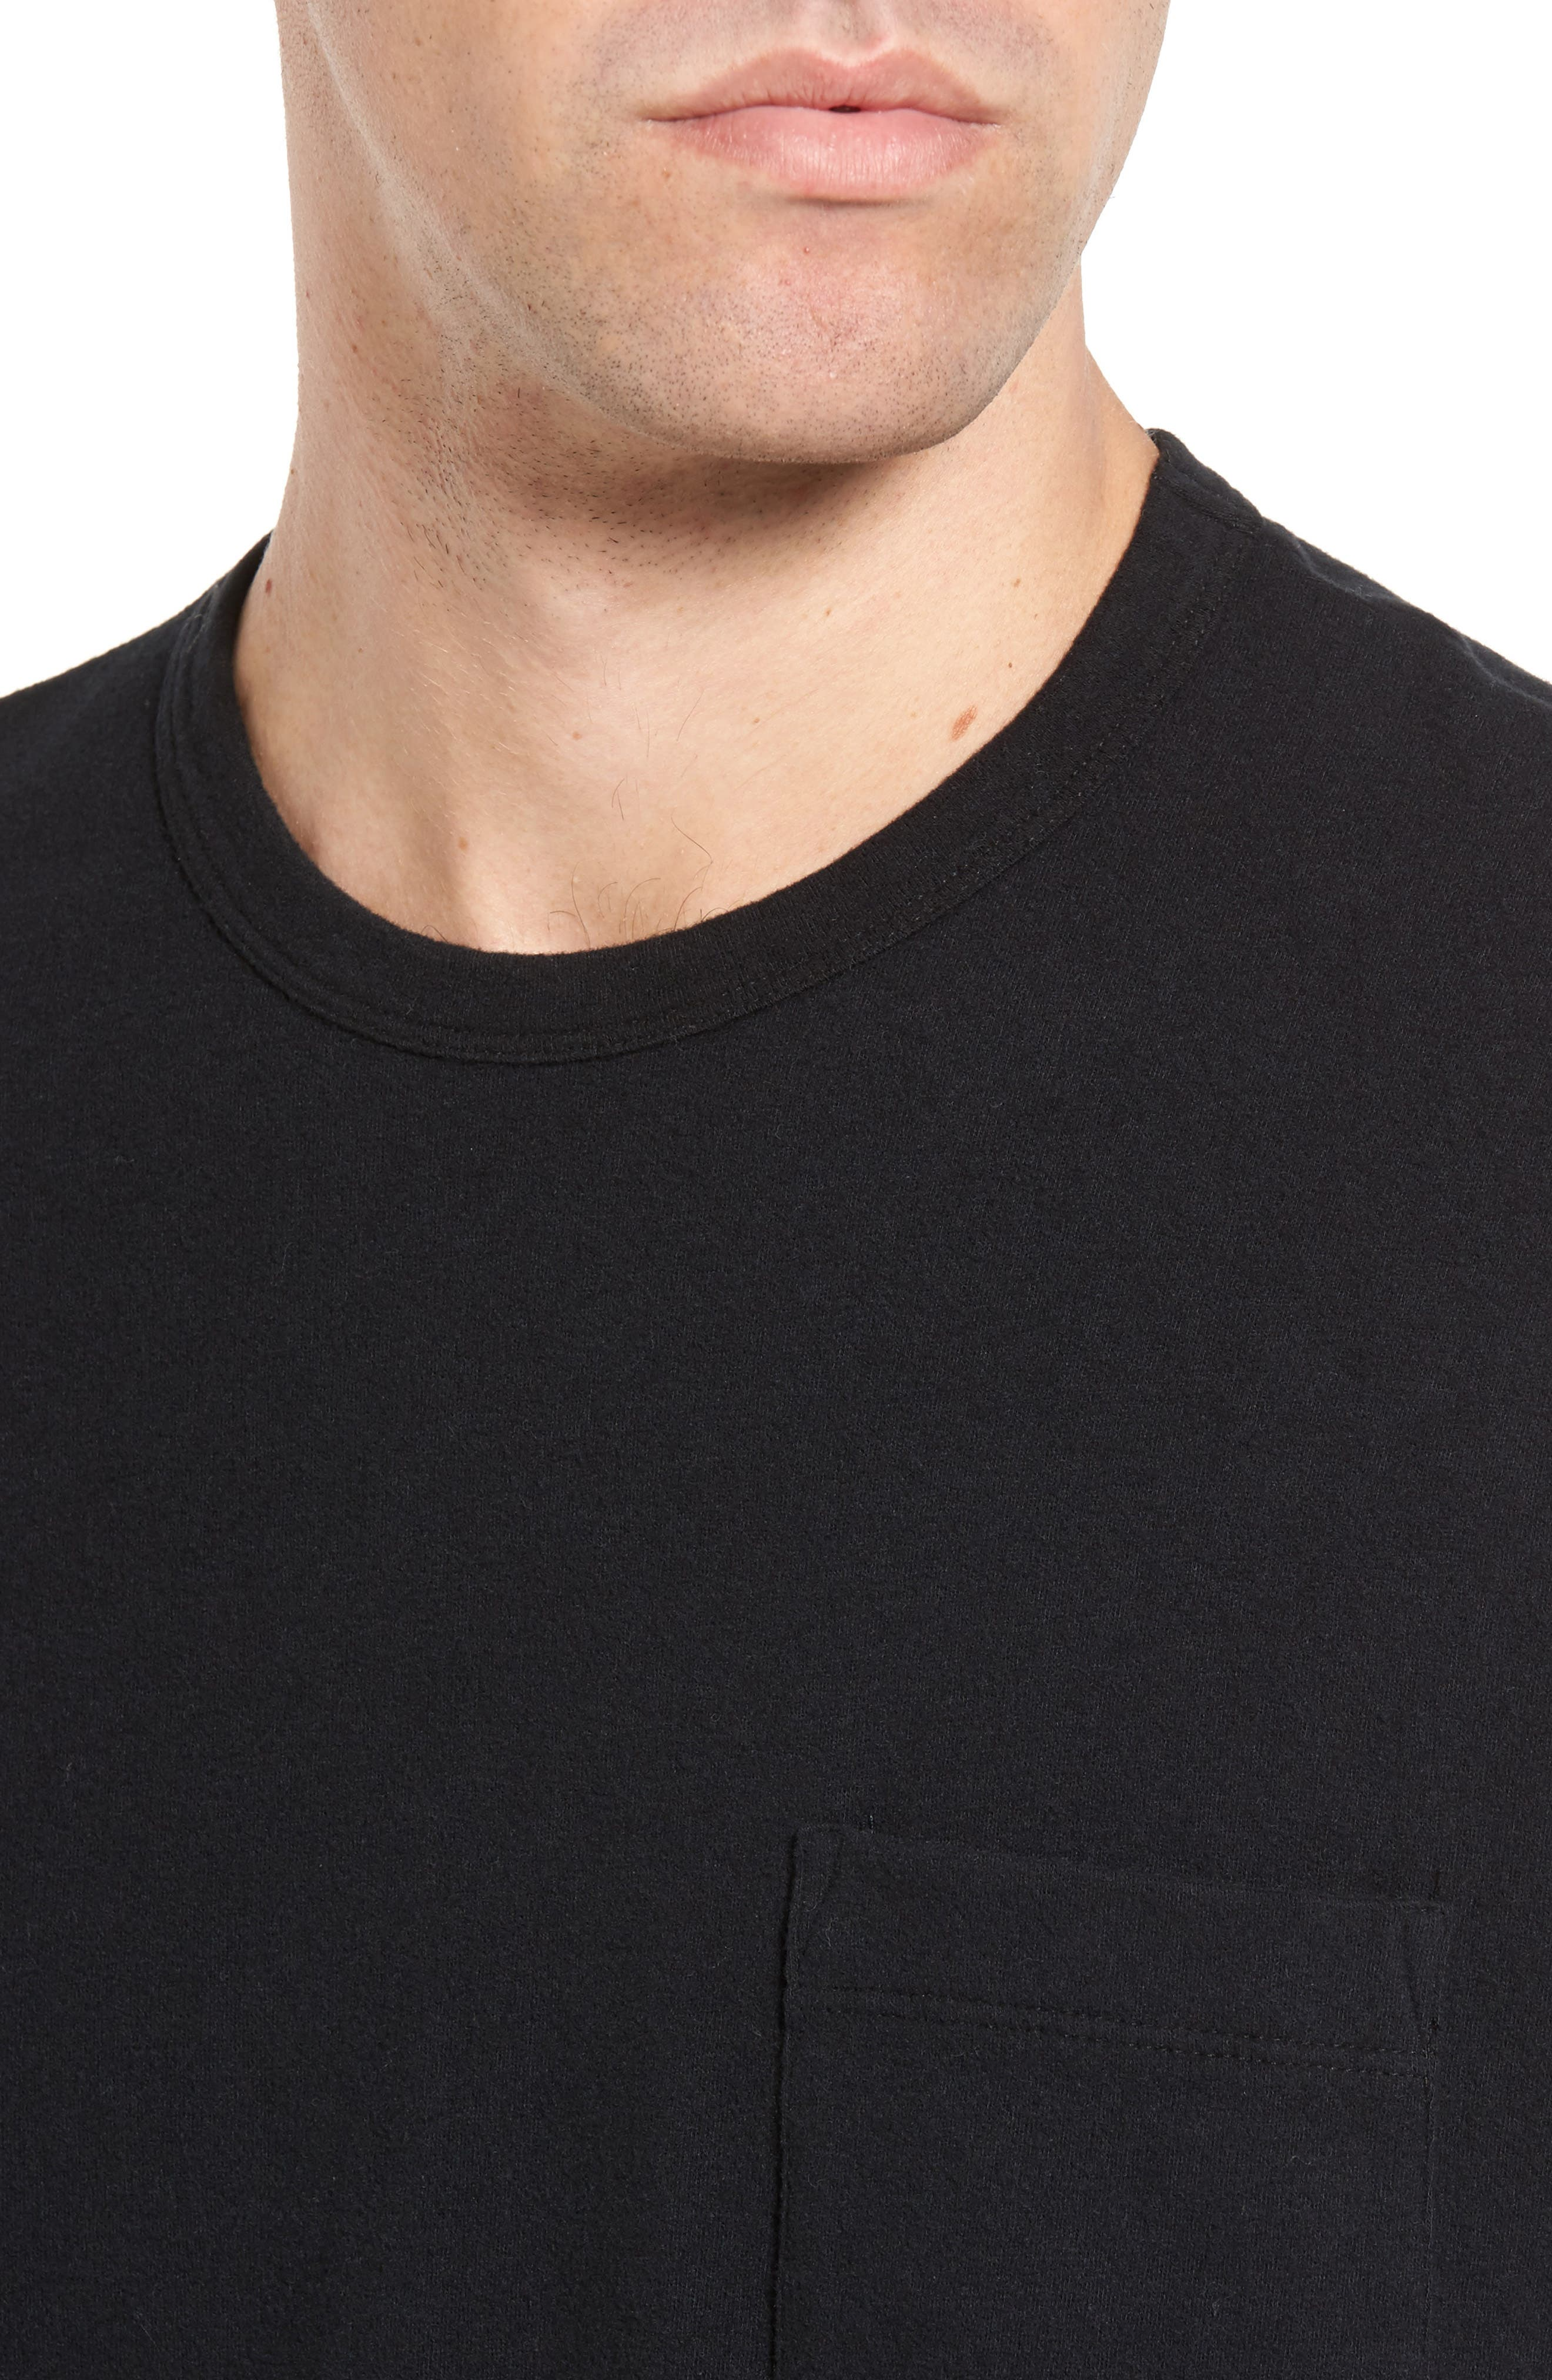 Sueded Jersey Pocket T-Shirt,                             Alternate thumbnail 4, color,                             001